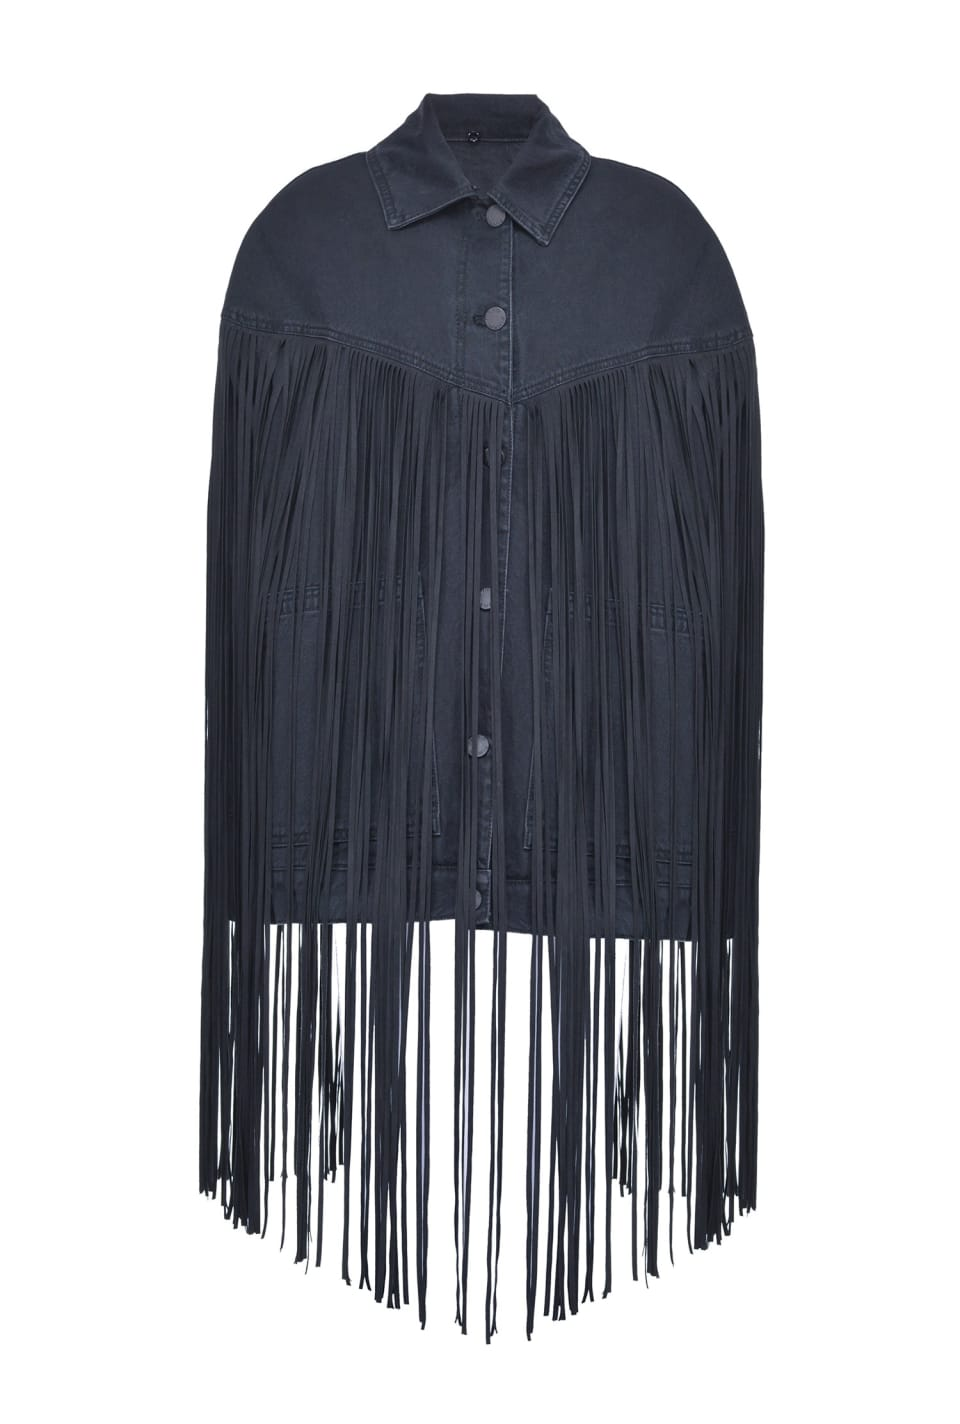 Caban oversize in denim con frange - Pinko